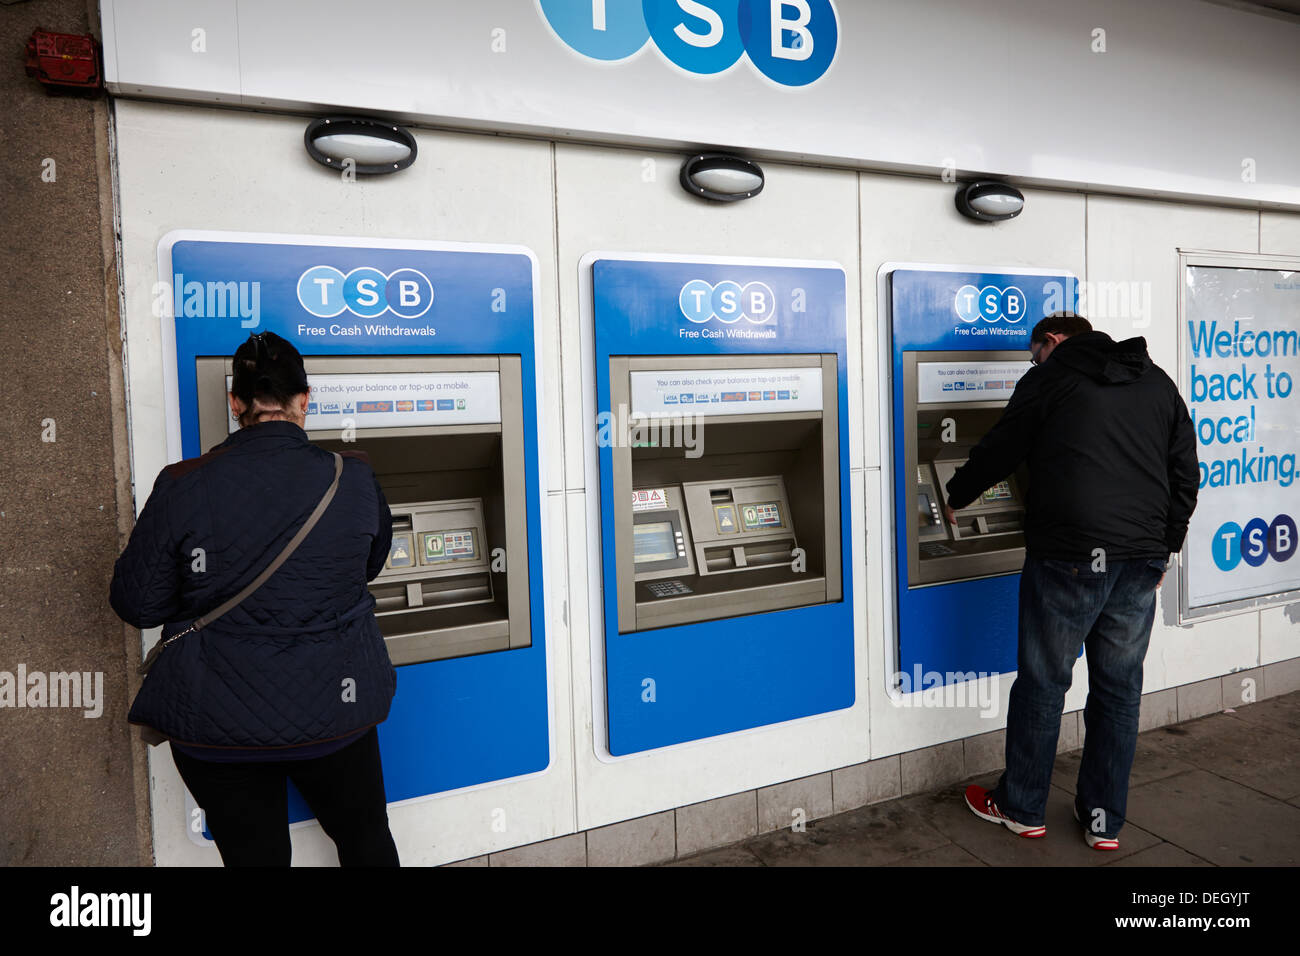 customers using cash machines of newly reopened TSB bank retail bank in the uk - Stock Image